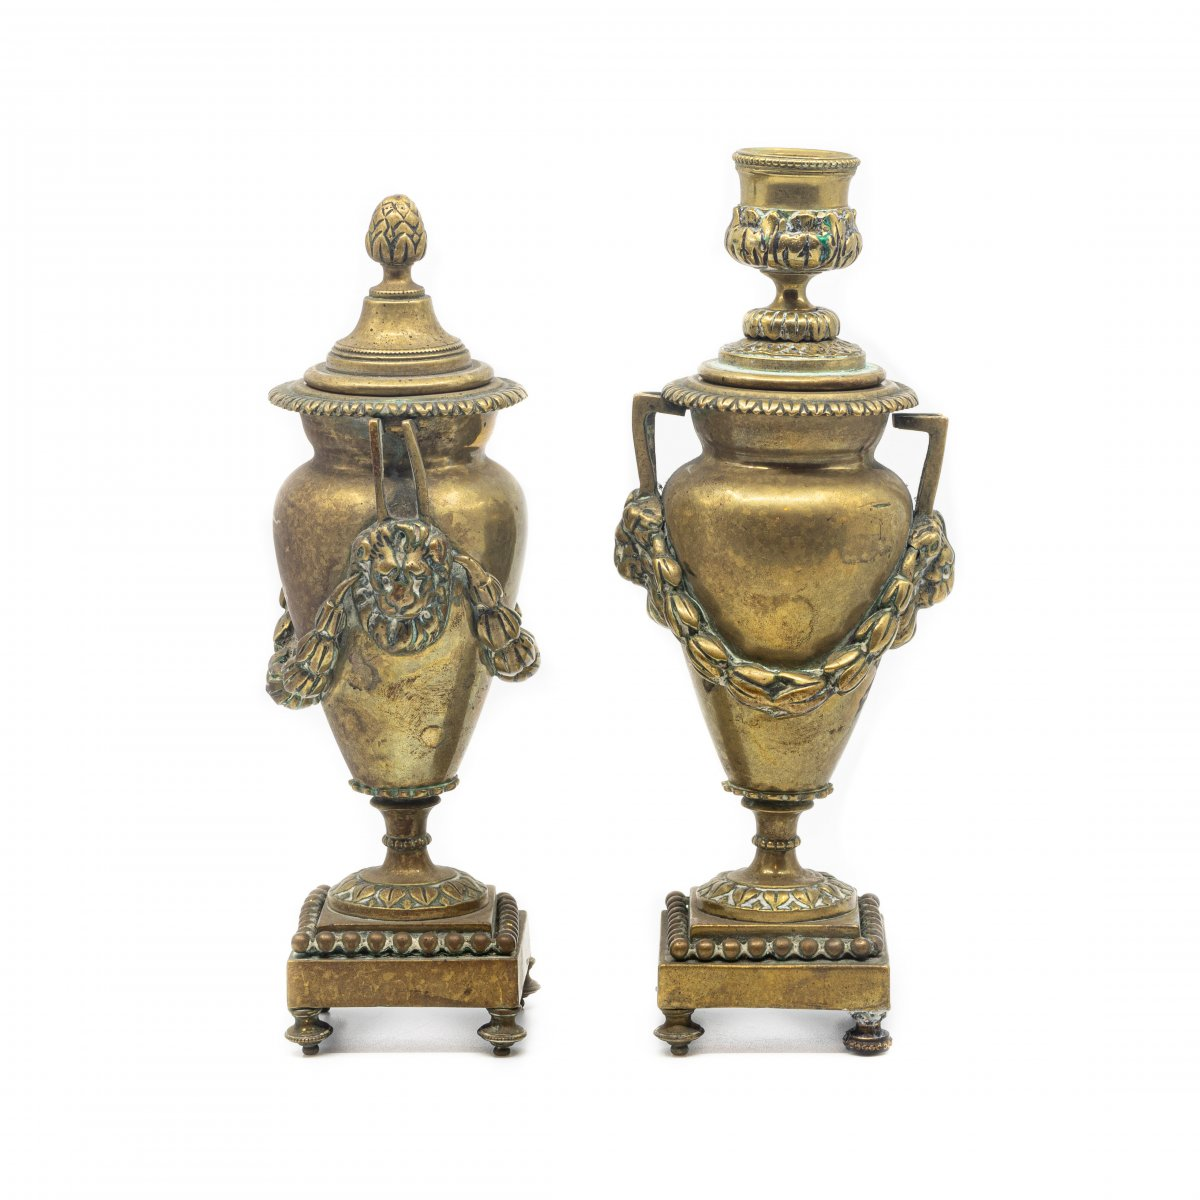 Pair Of Candlesticks Brass Double Function - 18th Century